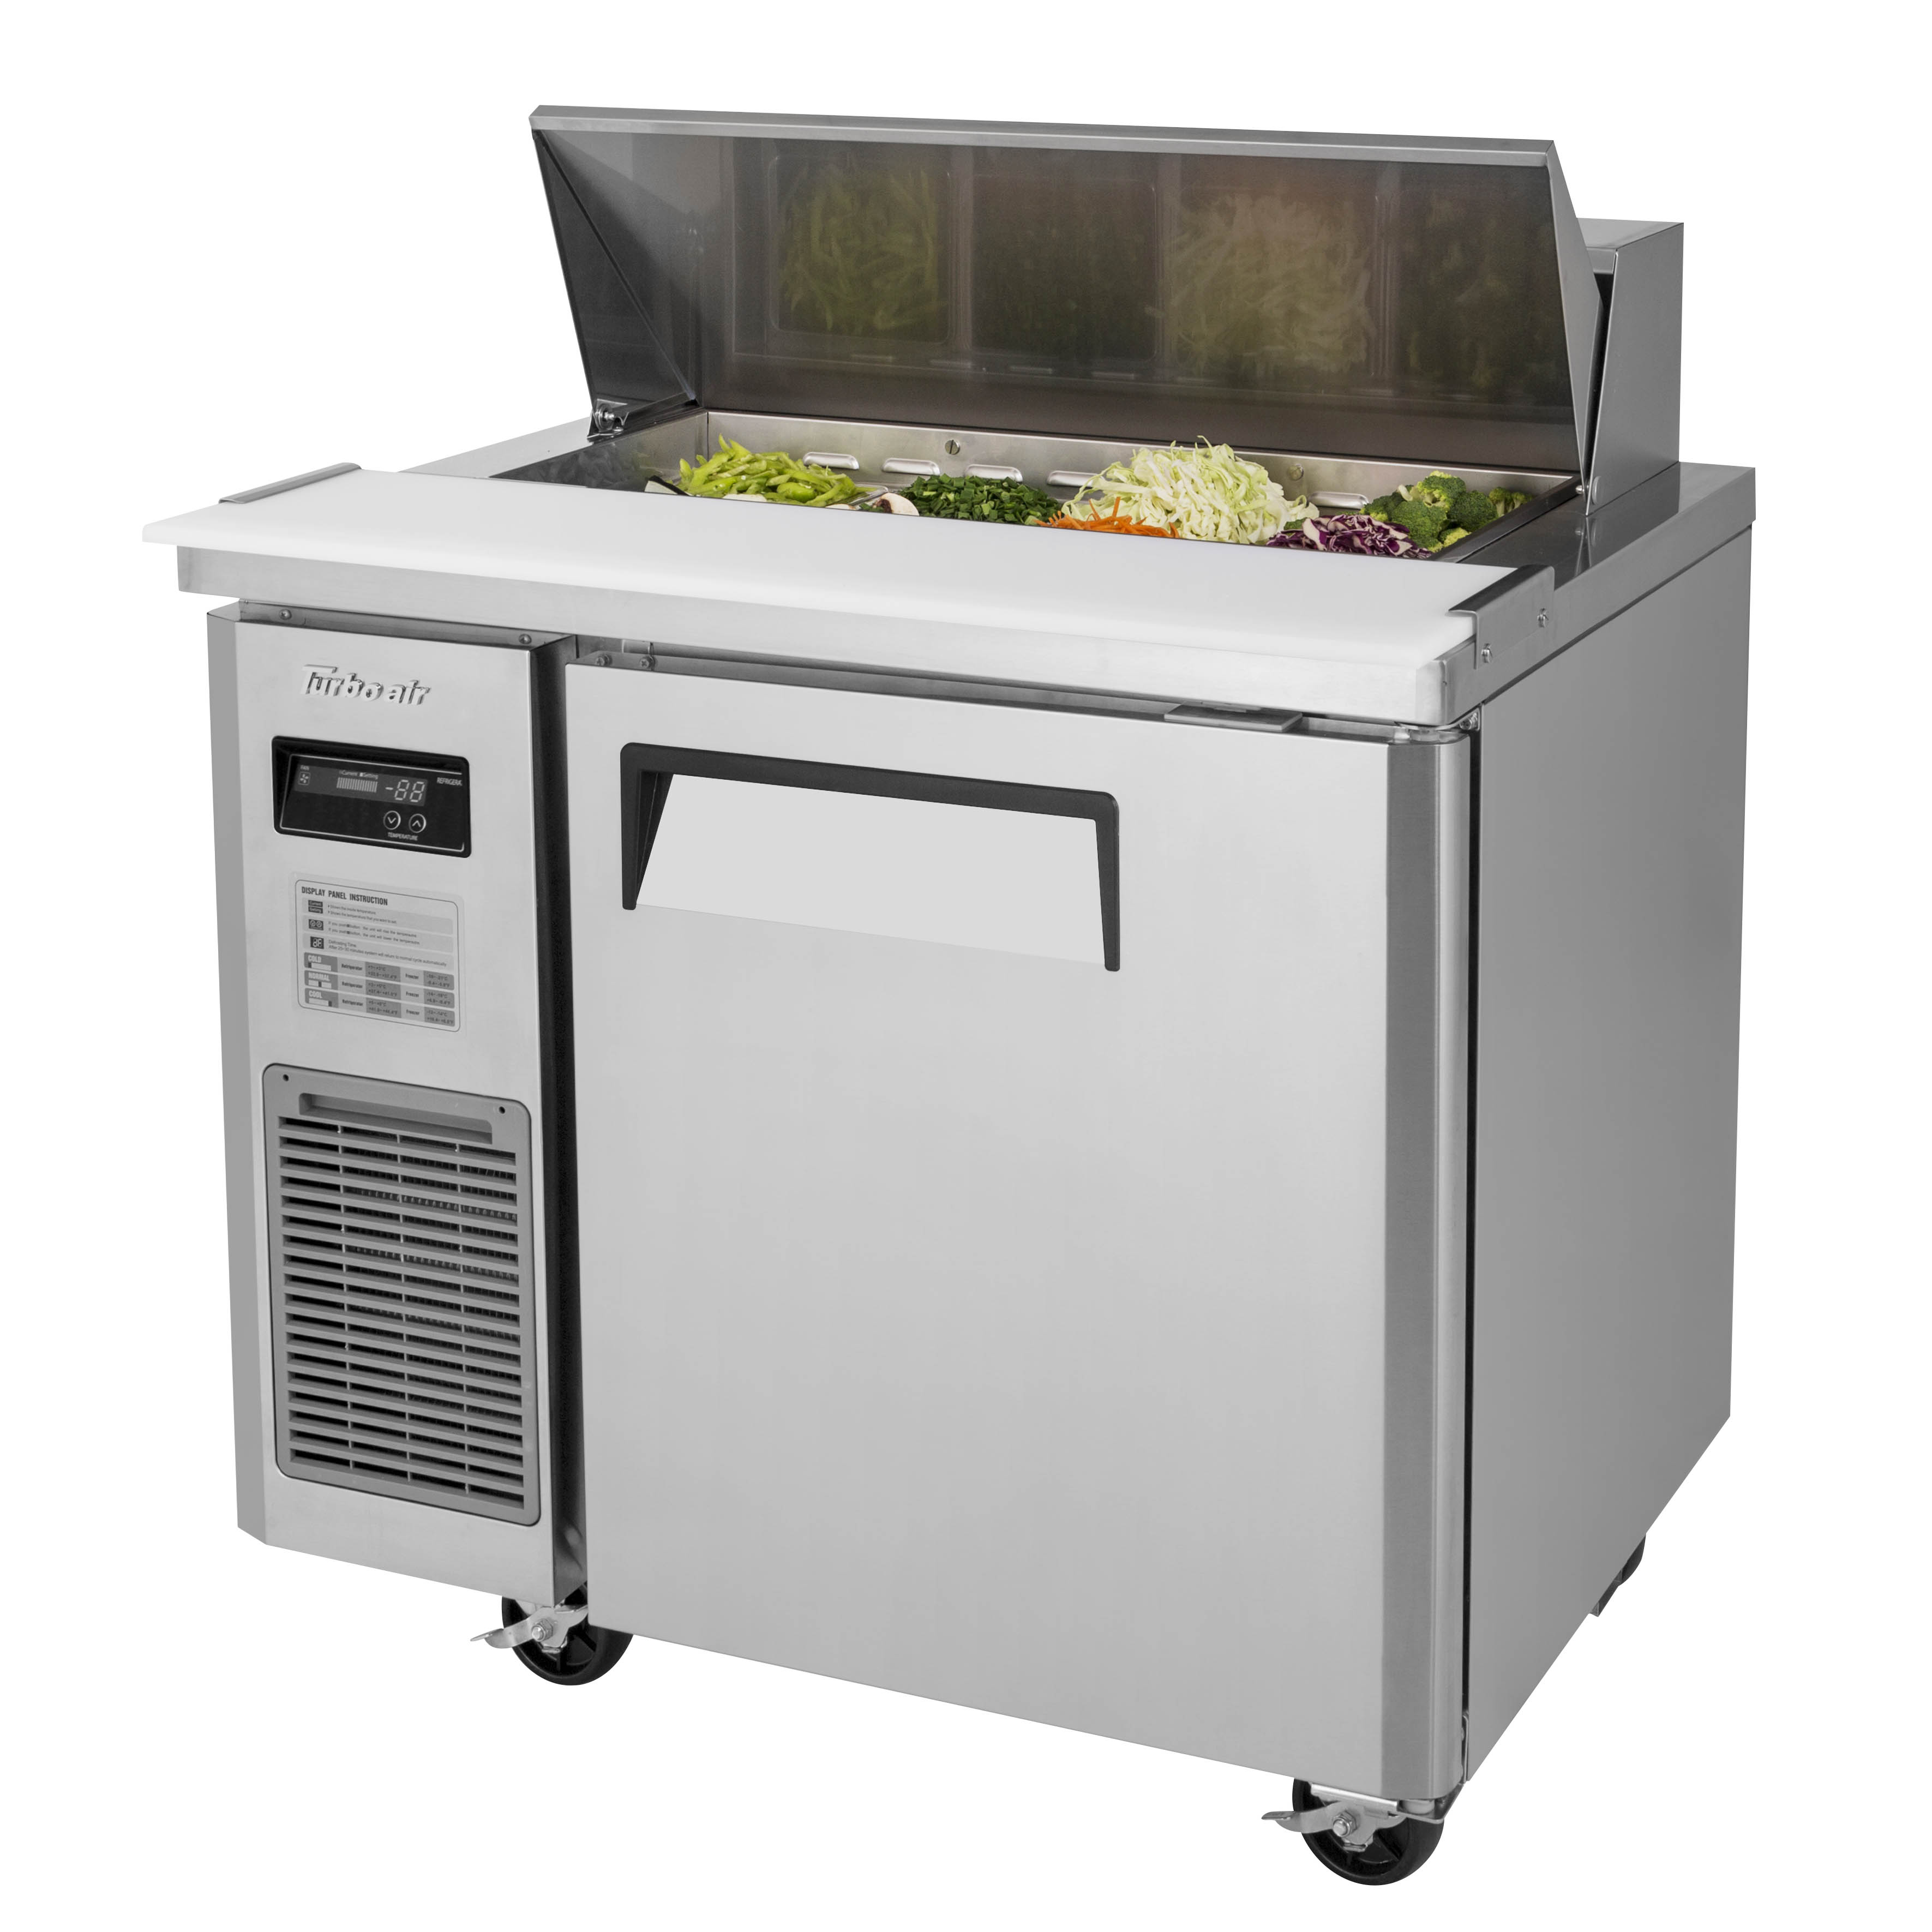 Turbo Air JST-36-N refrigerated counter, sandwich / salad unit